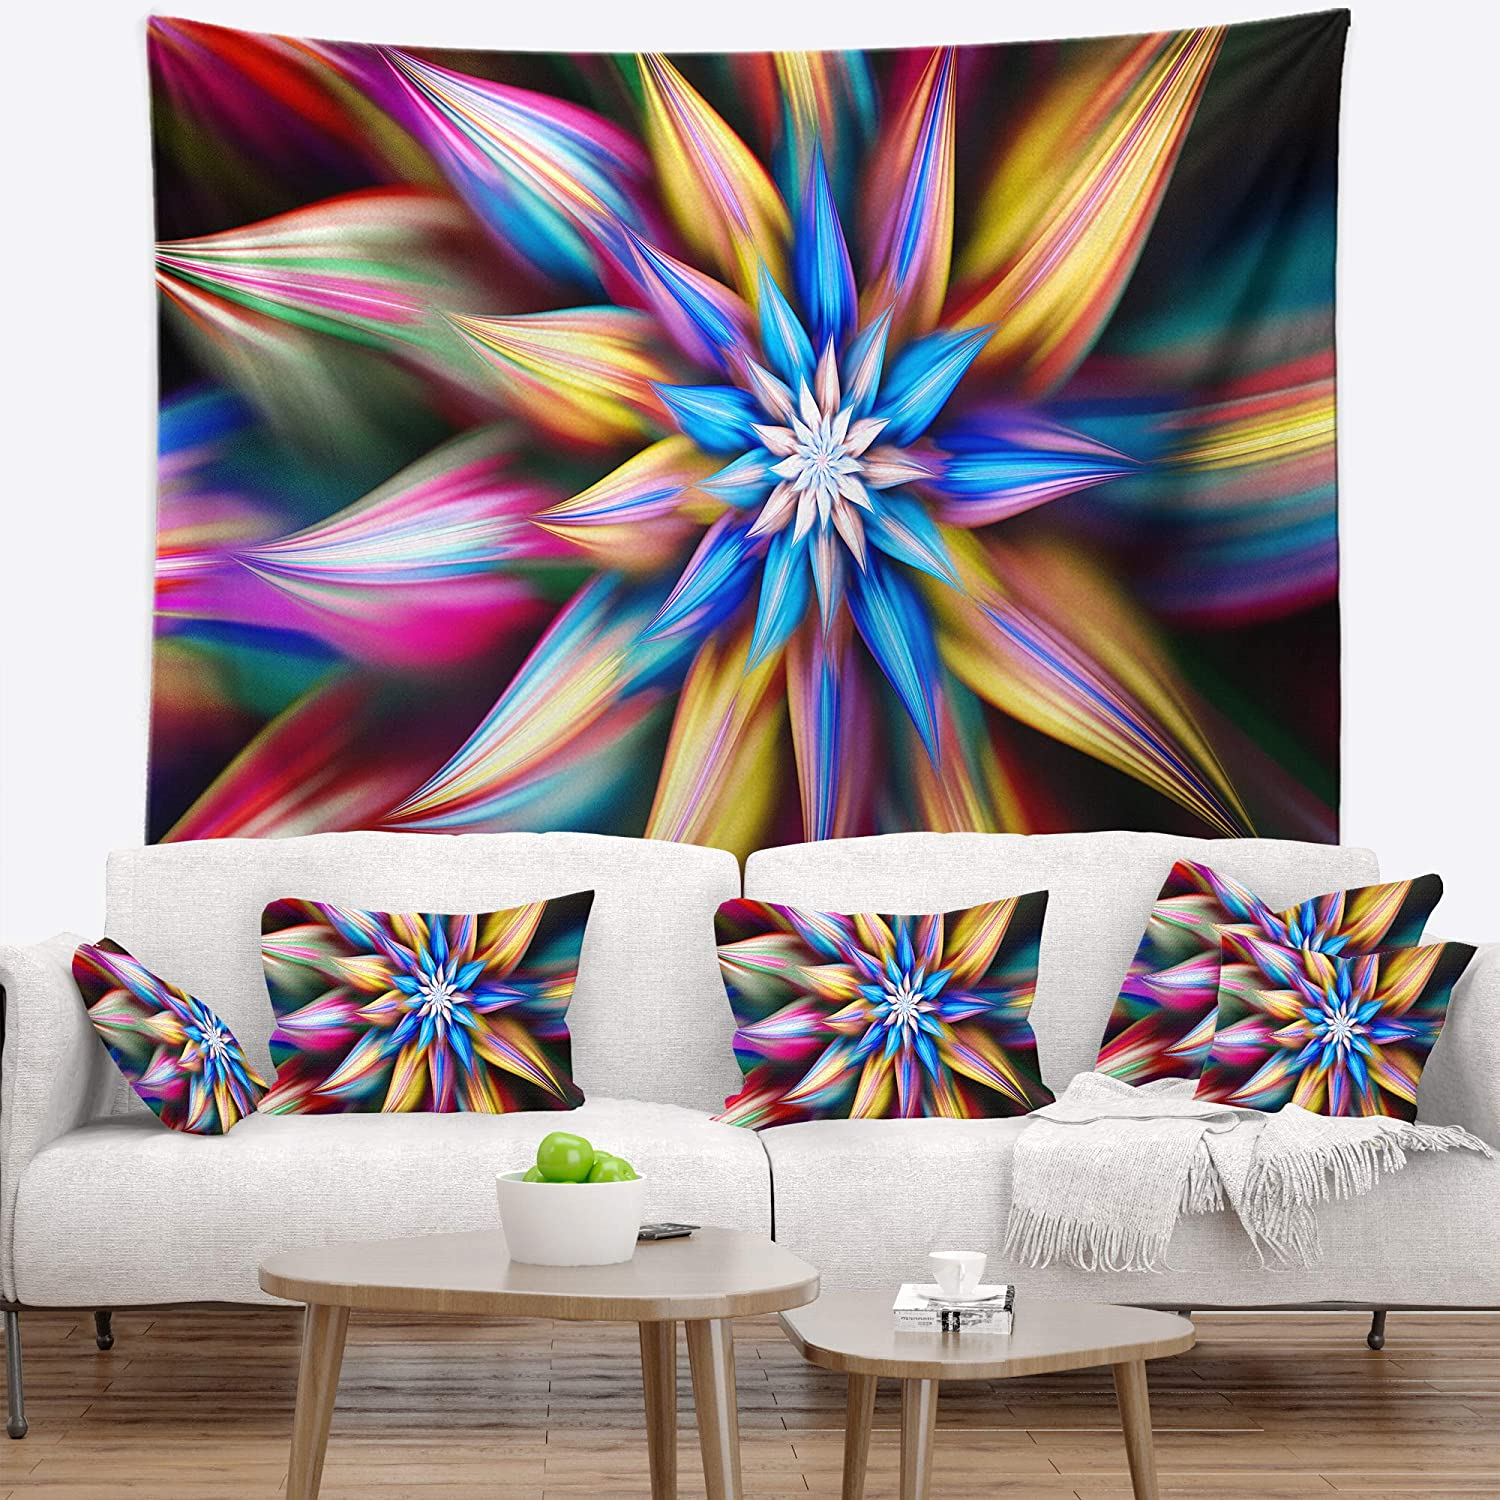 Designart TAP15532-80-68 ' Exotic Multi Color Flower Petals' Floral Blanket Décor Art for Home and Office Wall Tapestry x Large: 80 in. x 68 in. Created On Lightweight Polyester Fabric